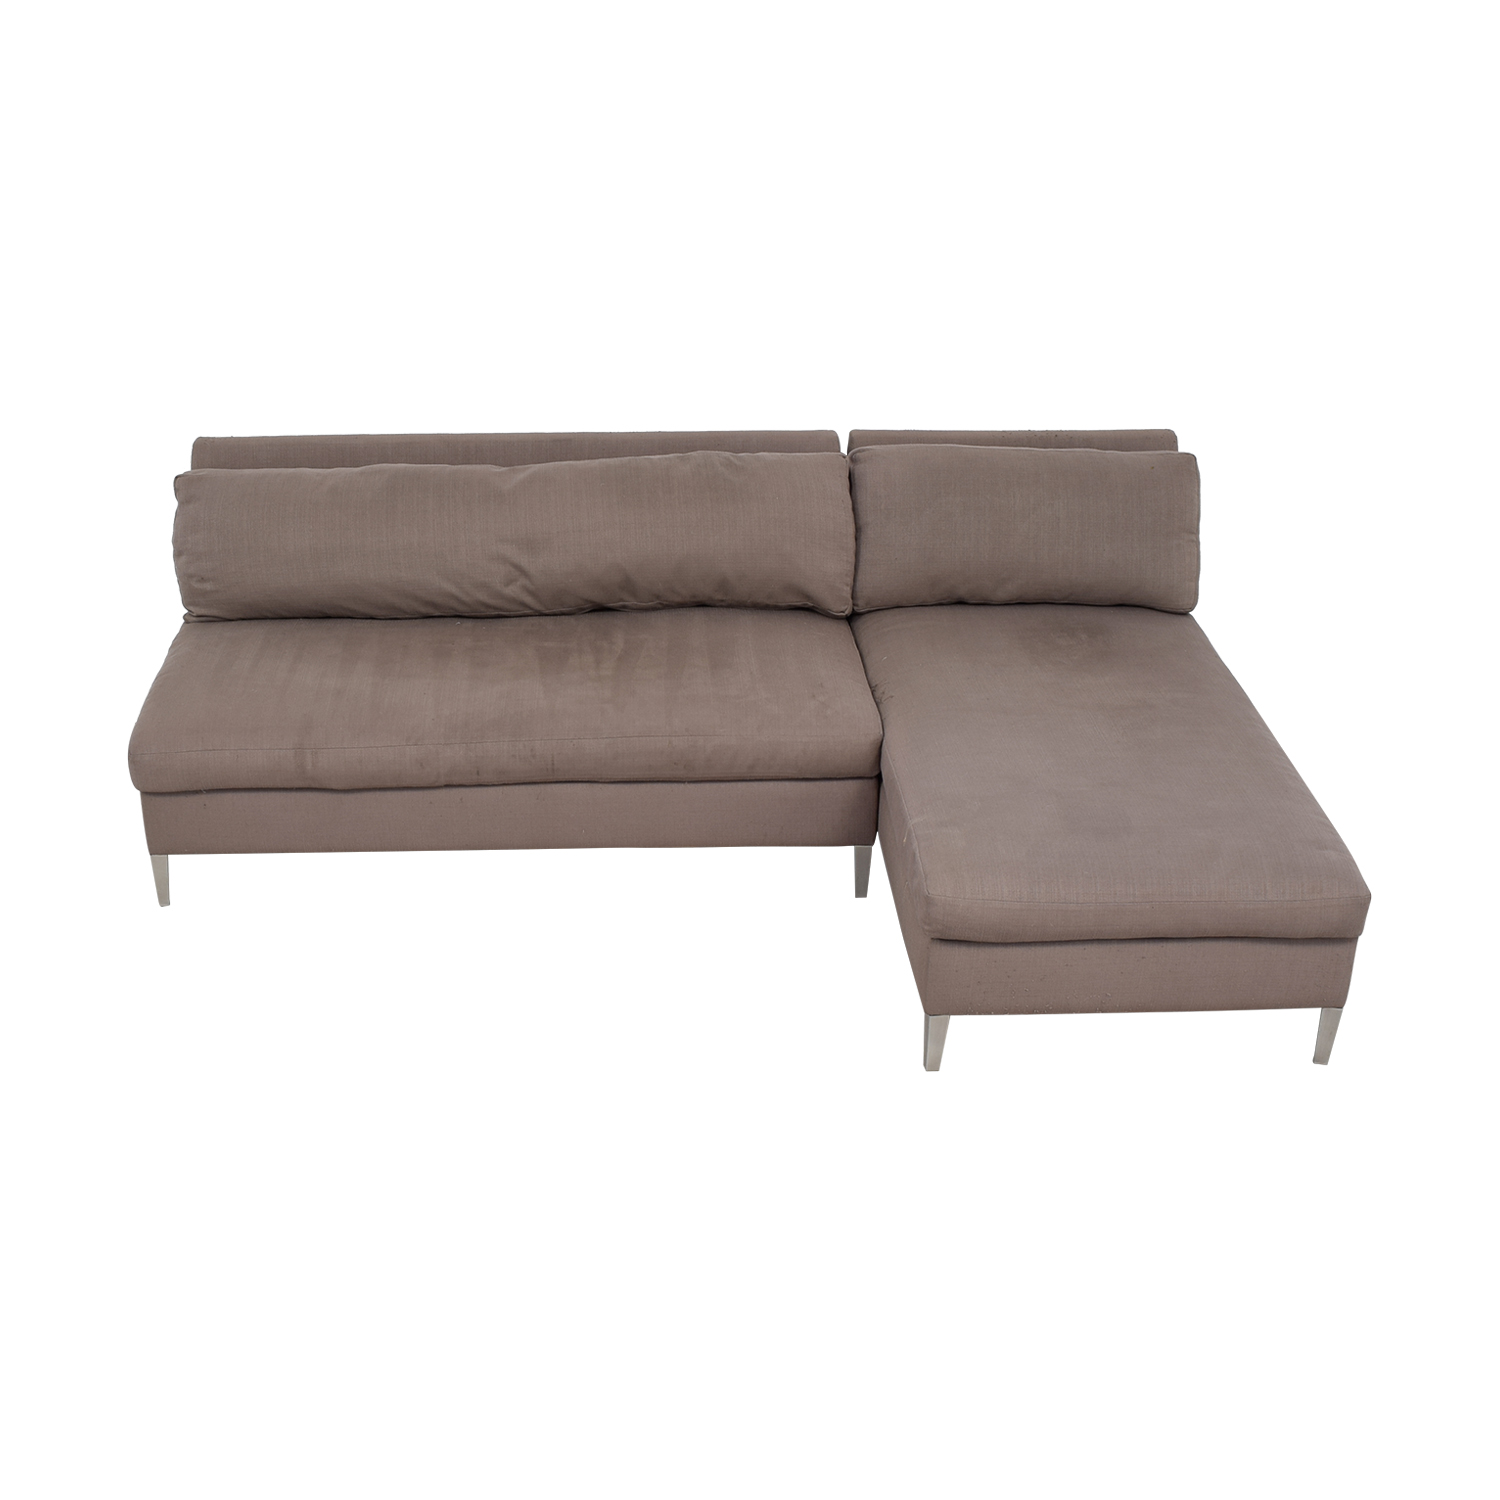 CB2 CB2 Ciello II Grey Chaise Sectional price